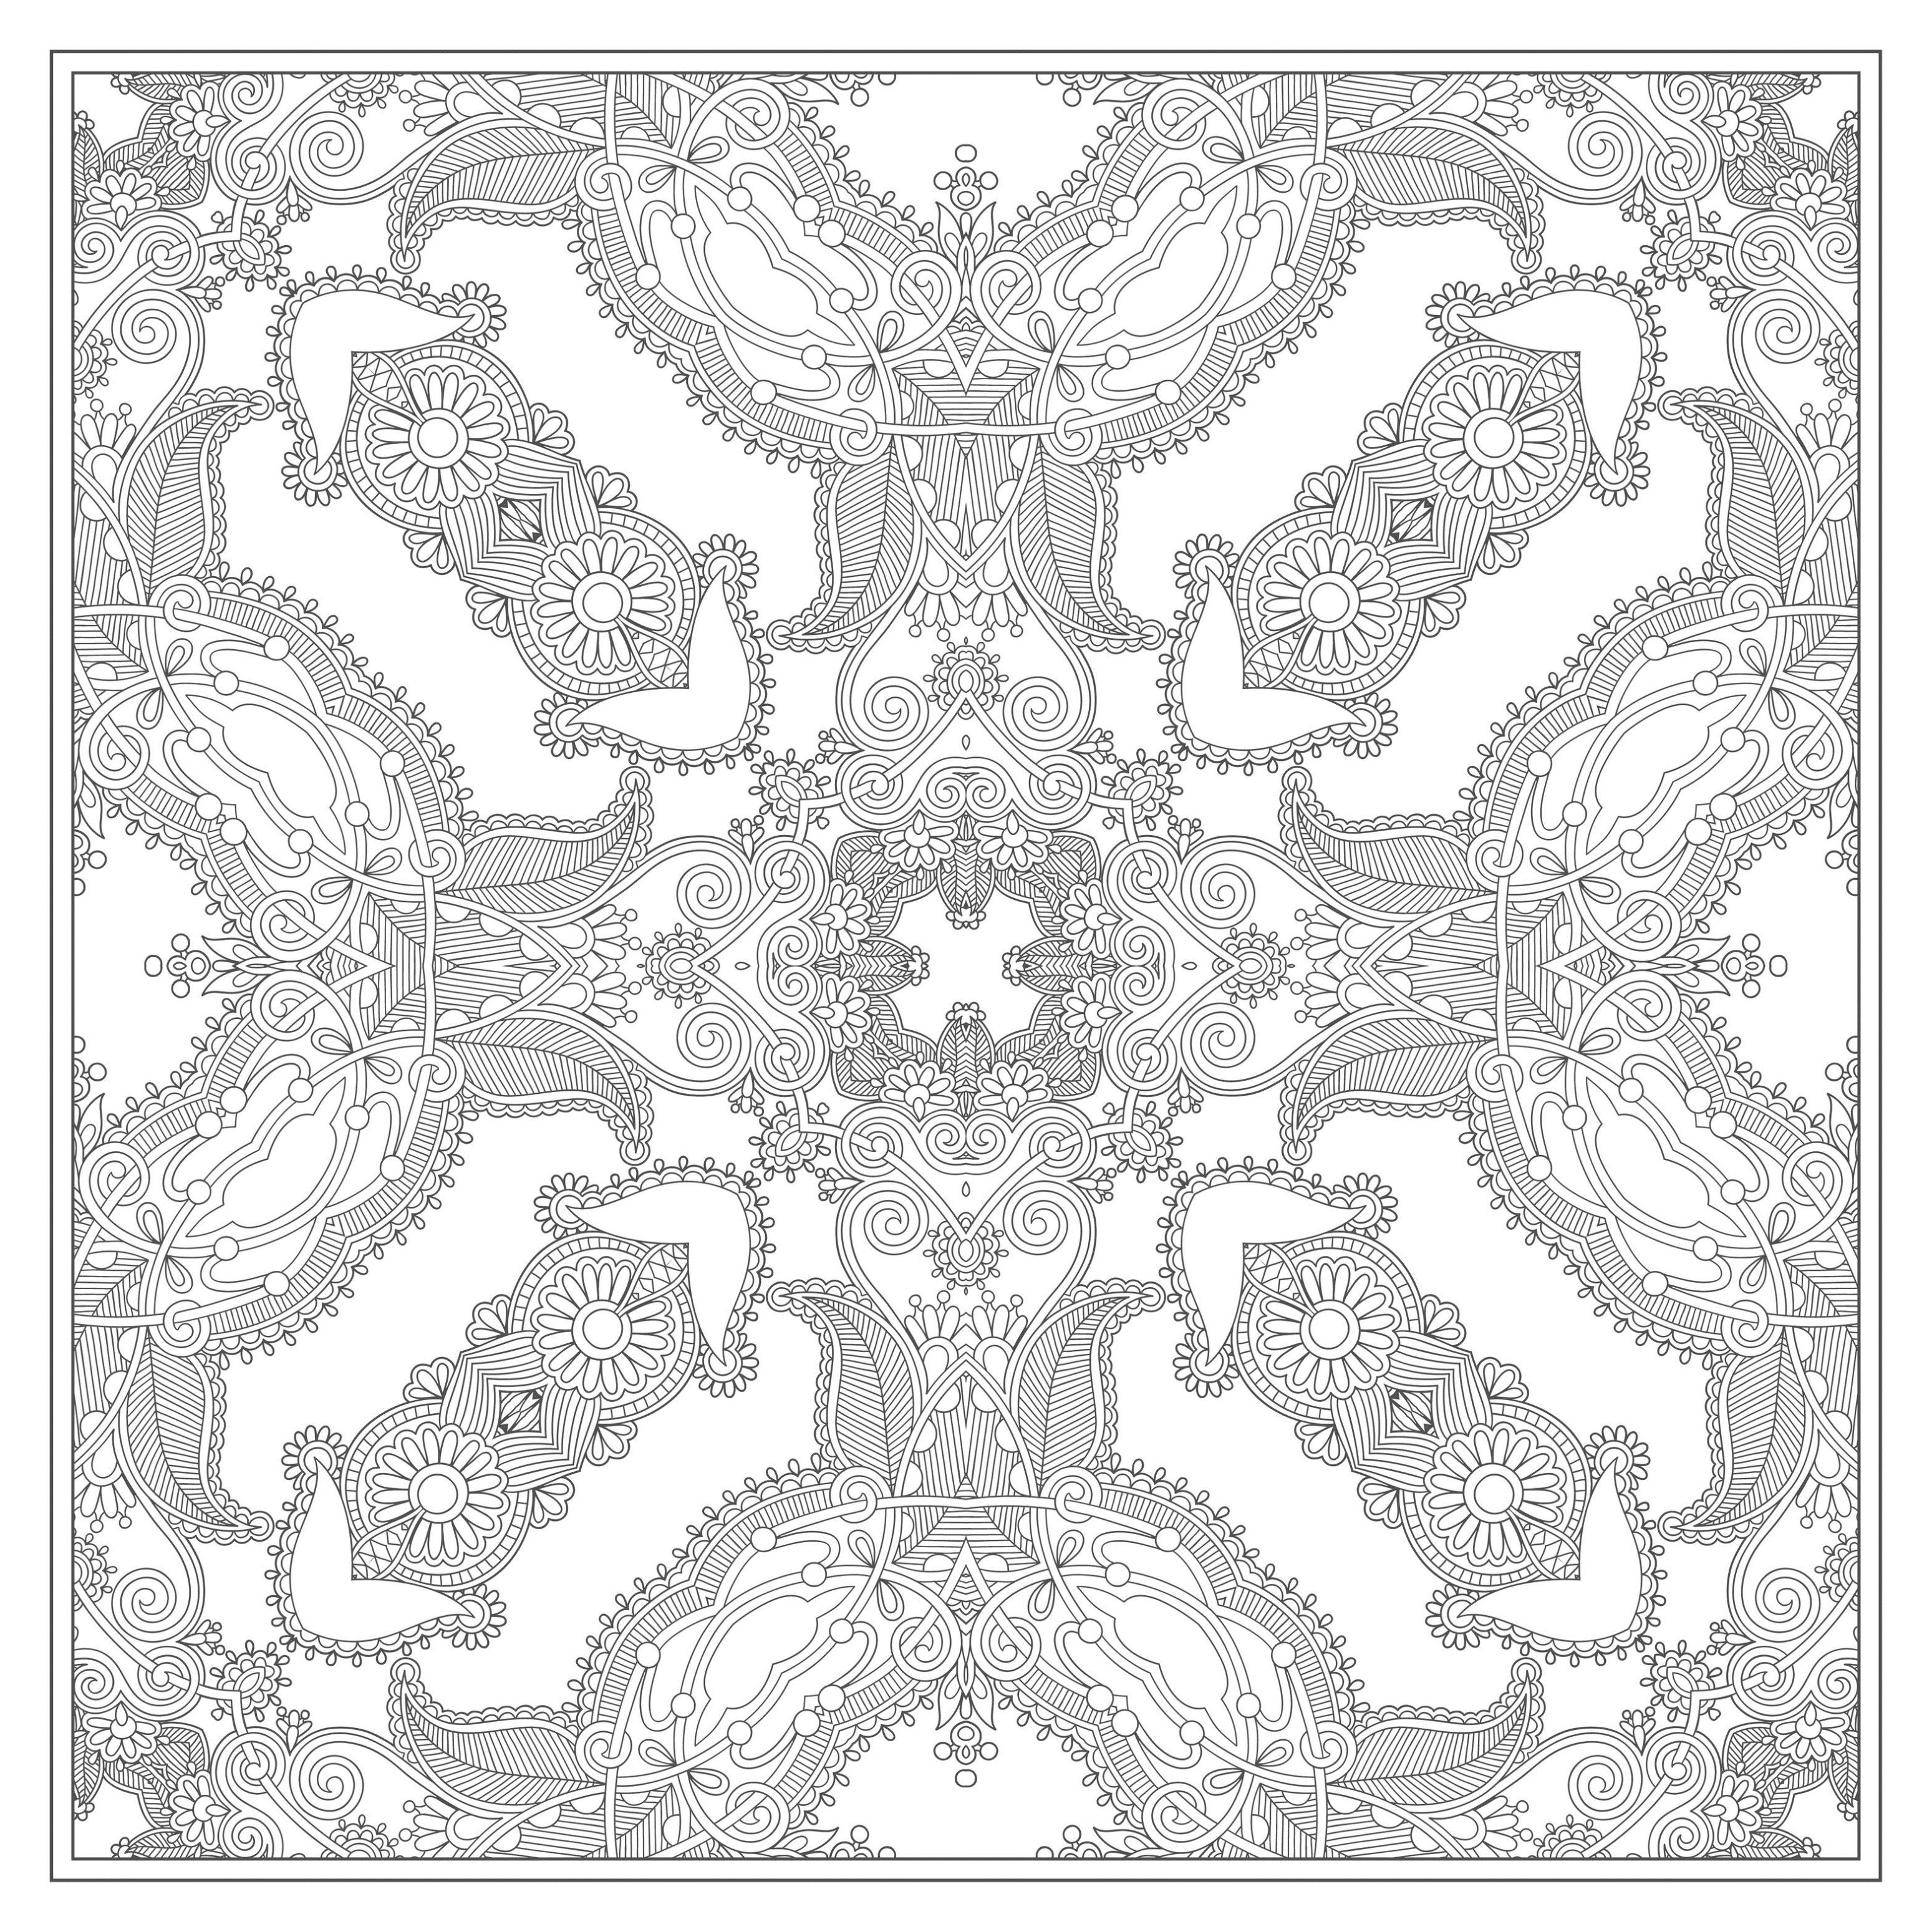 Square Mandala drawing with little vegetal elements, by Karakotsya. A magnificent vegetation invades this magnificent Mandala : flowers, leaves ... Do whatever it takes to get rid of any distractions that may interfere with your coloring.